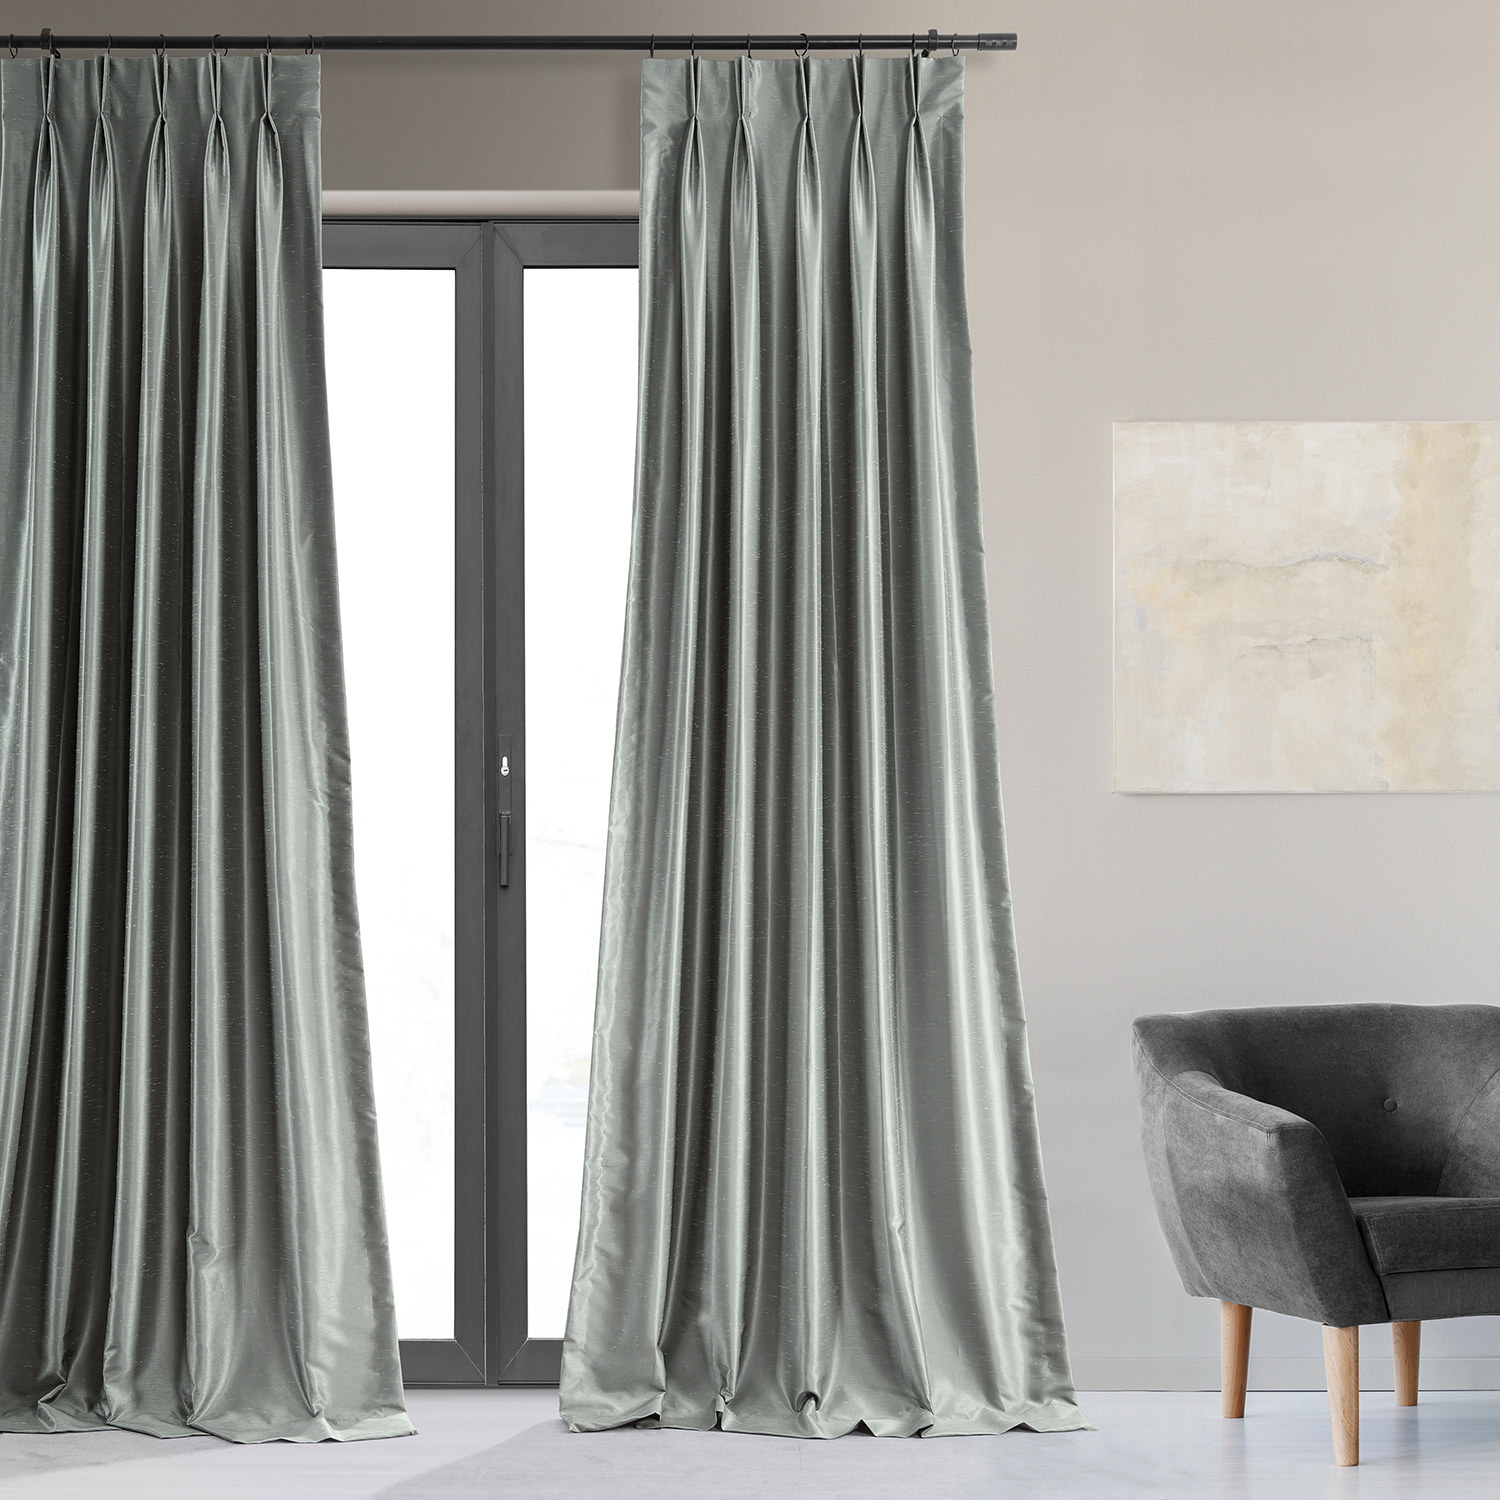 Silver Blackout Vintage Textured Faux Dupioni Pleated Curtain